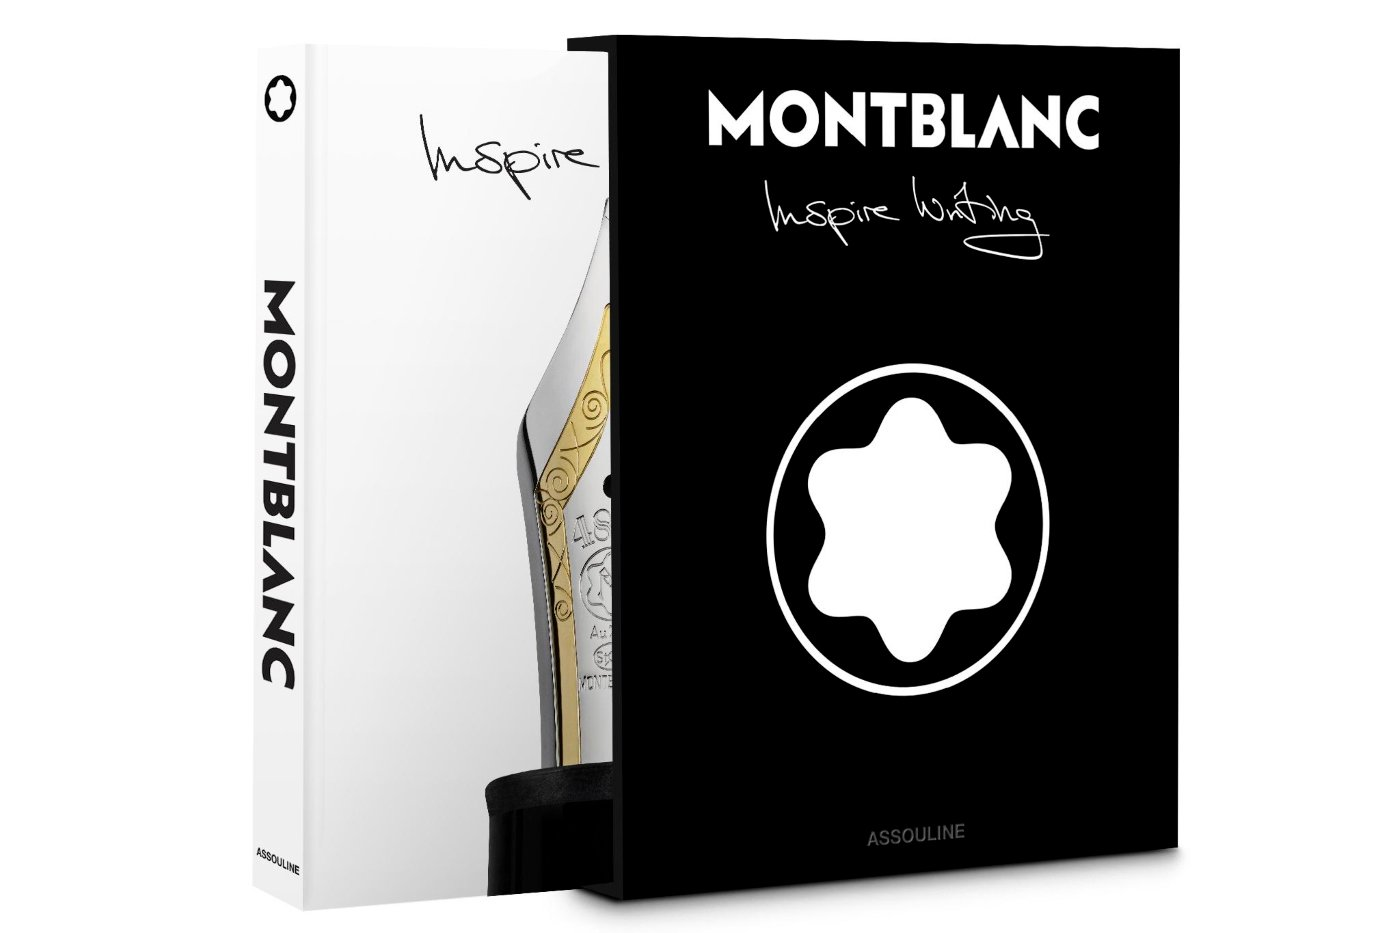 Montblanc_inspire_writing_slipcase_-_europa_star_magazine_2021